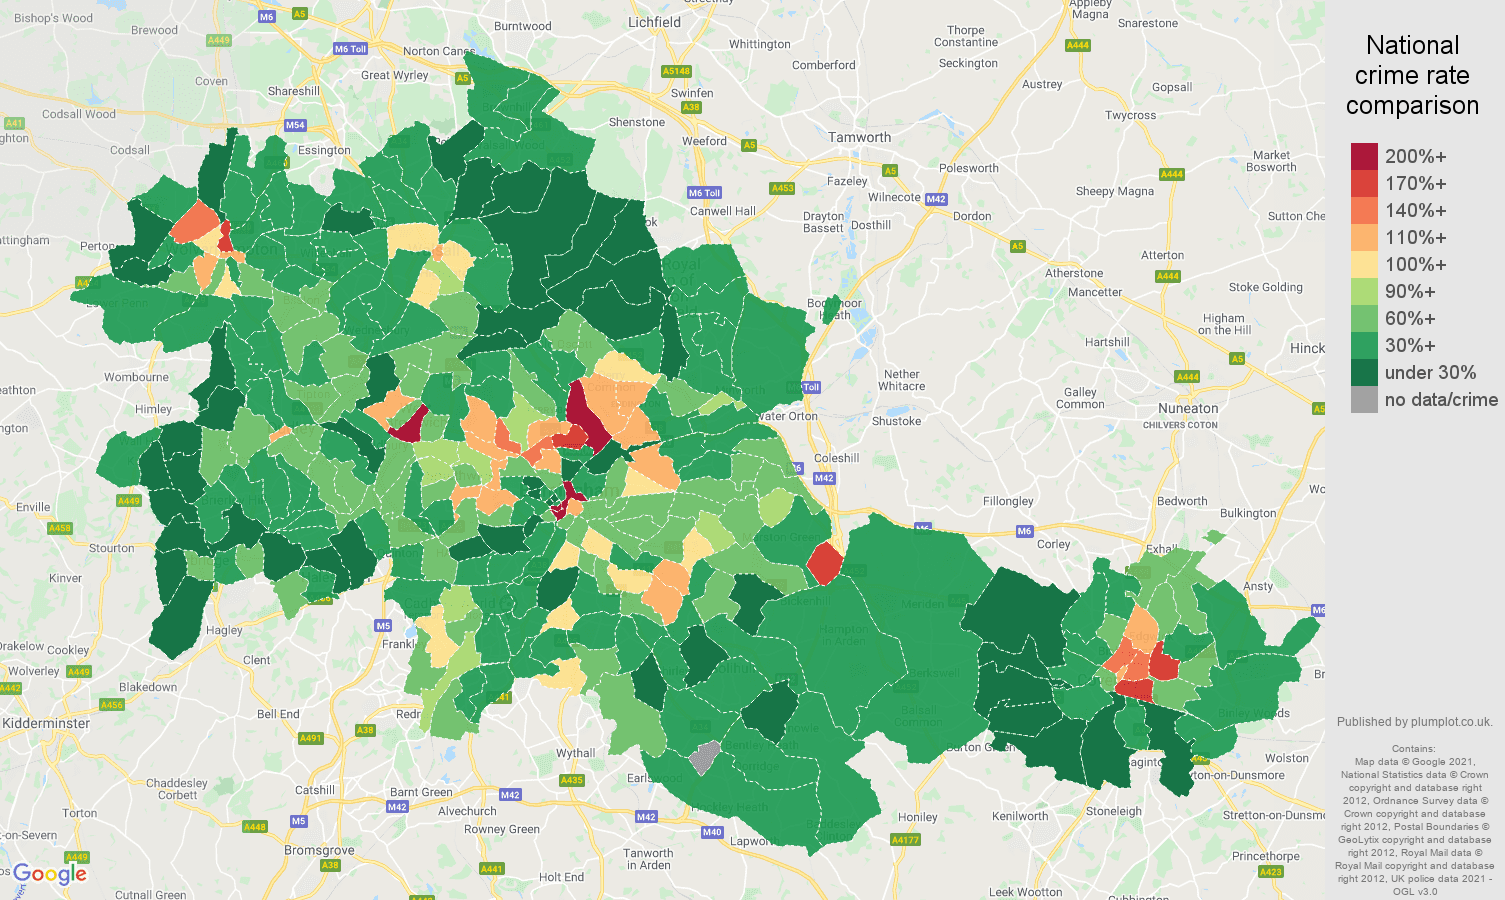 West Midlands county drugs crime rate comparison map